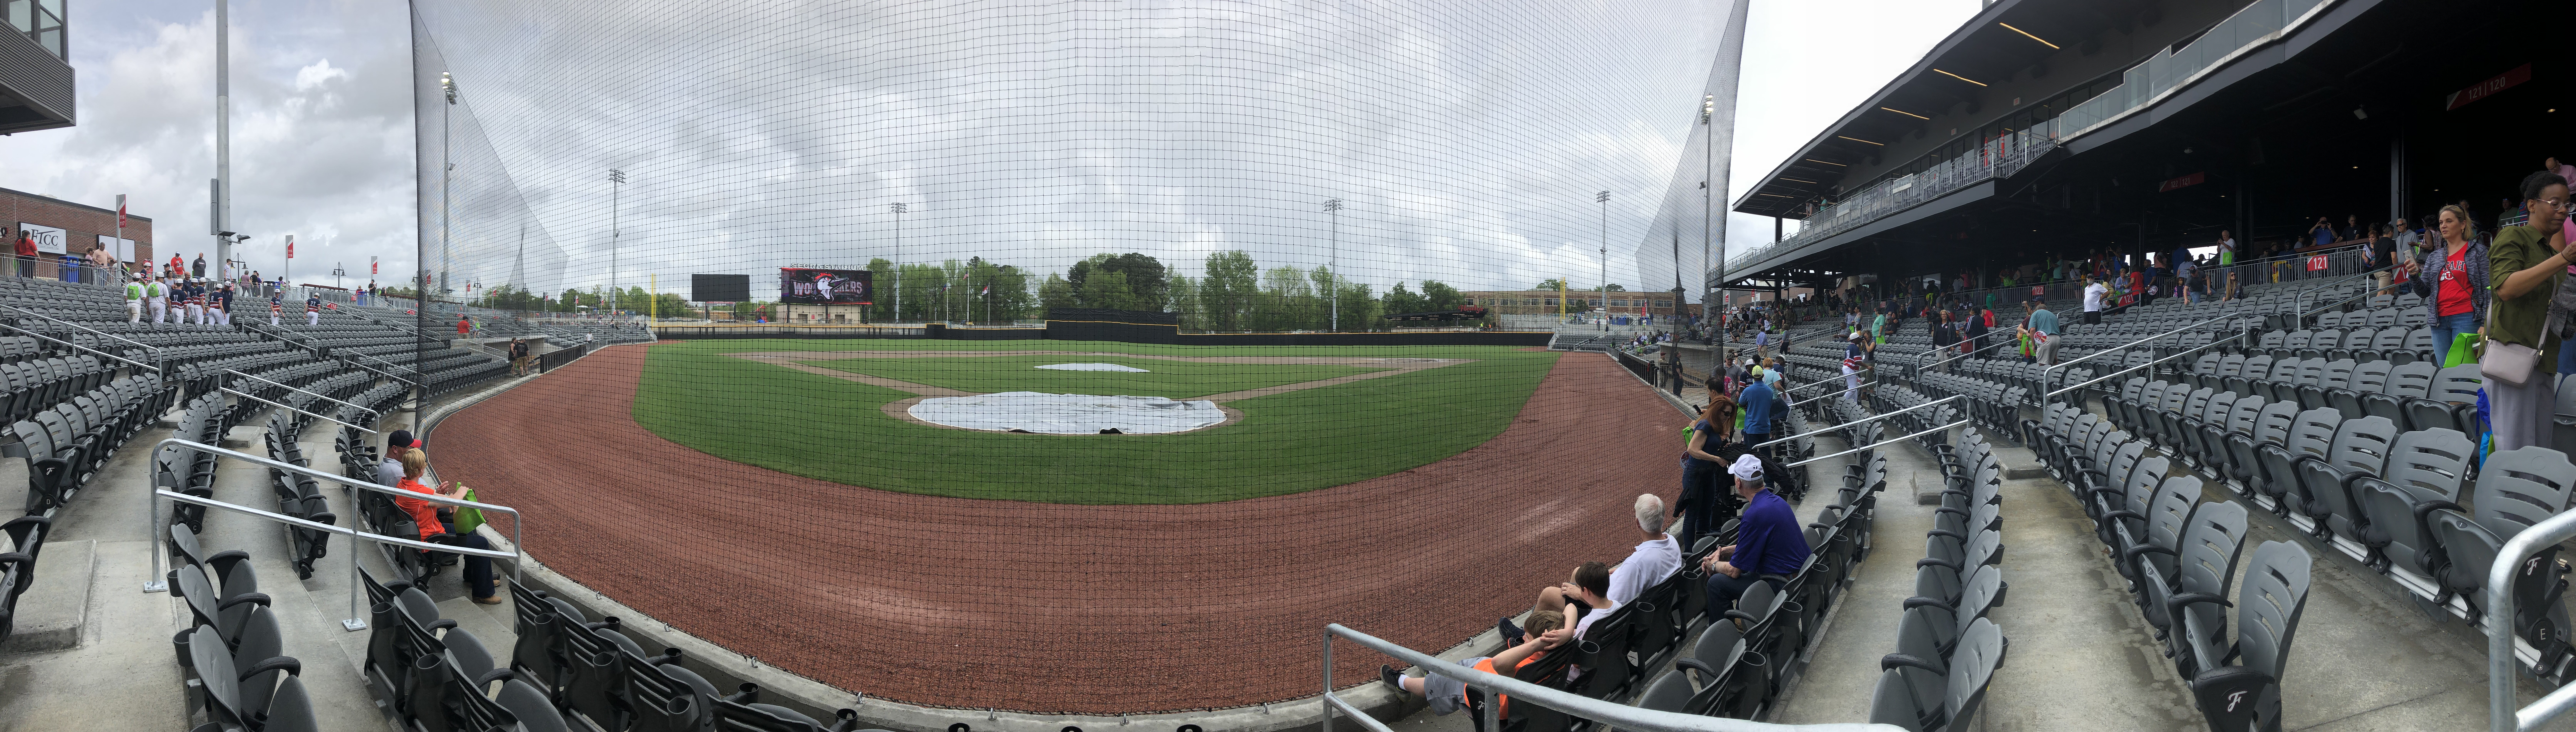 From behind home plate, lower level seating is at the same view level as the players on the field.